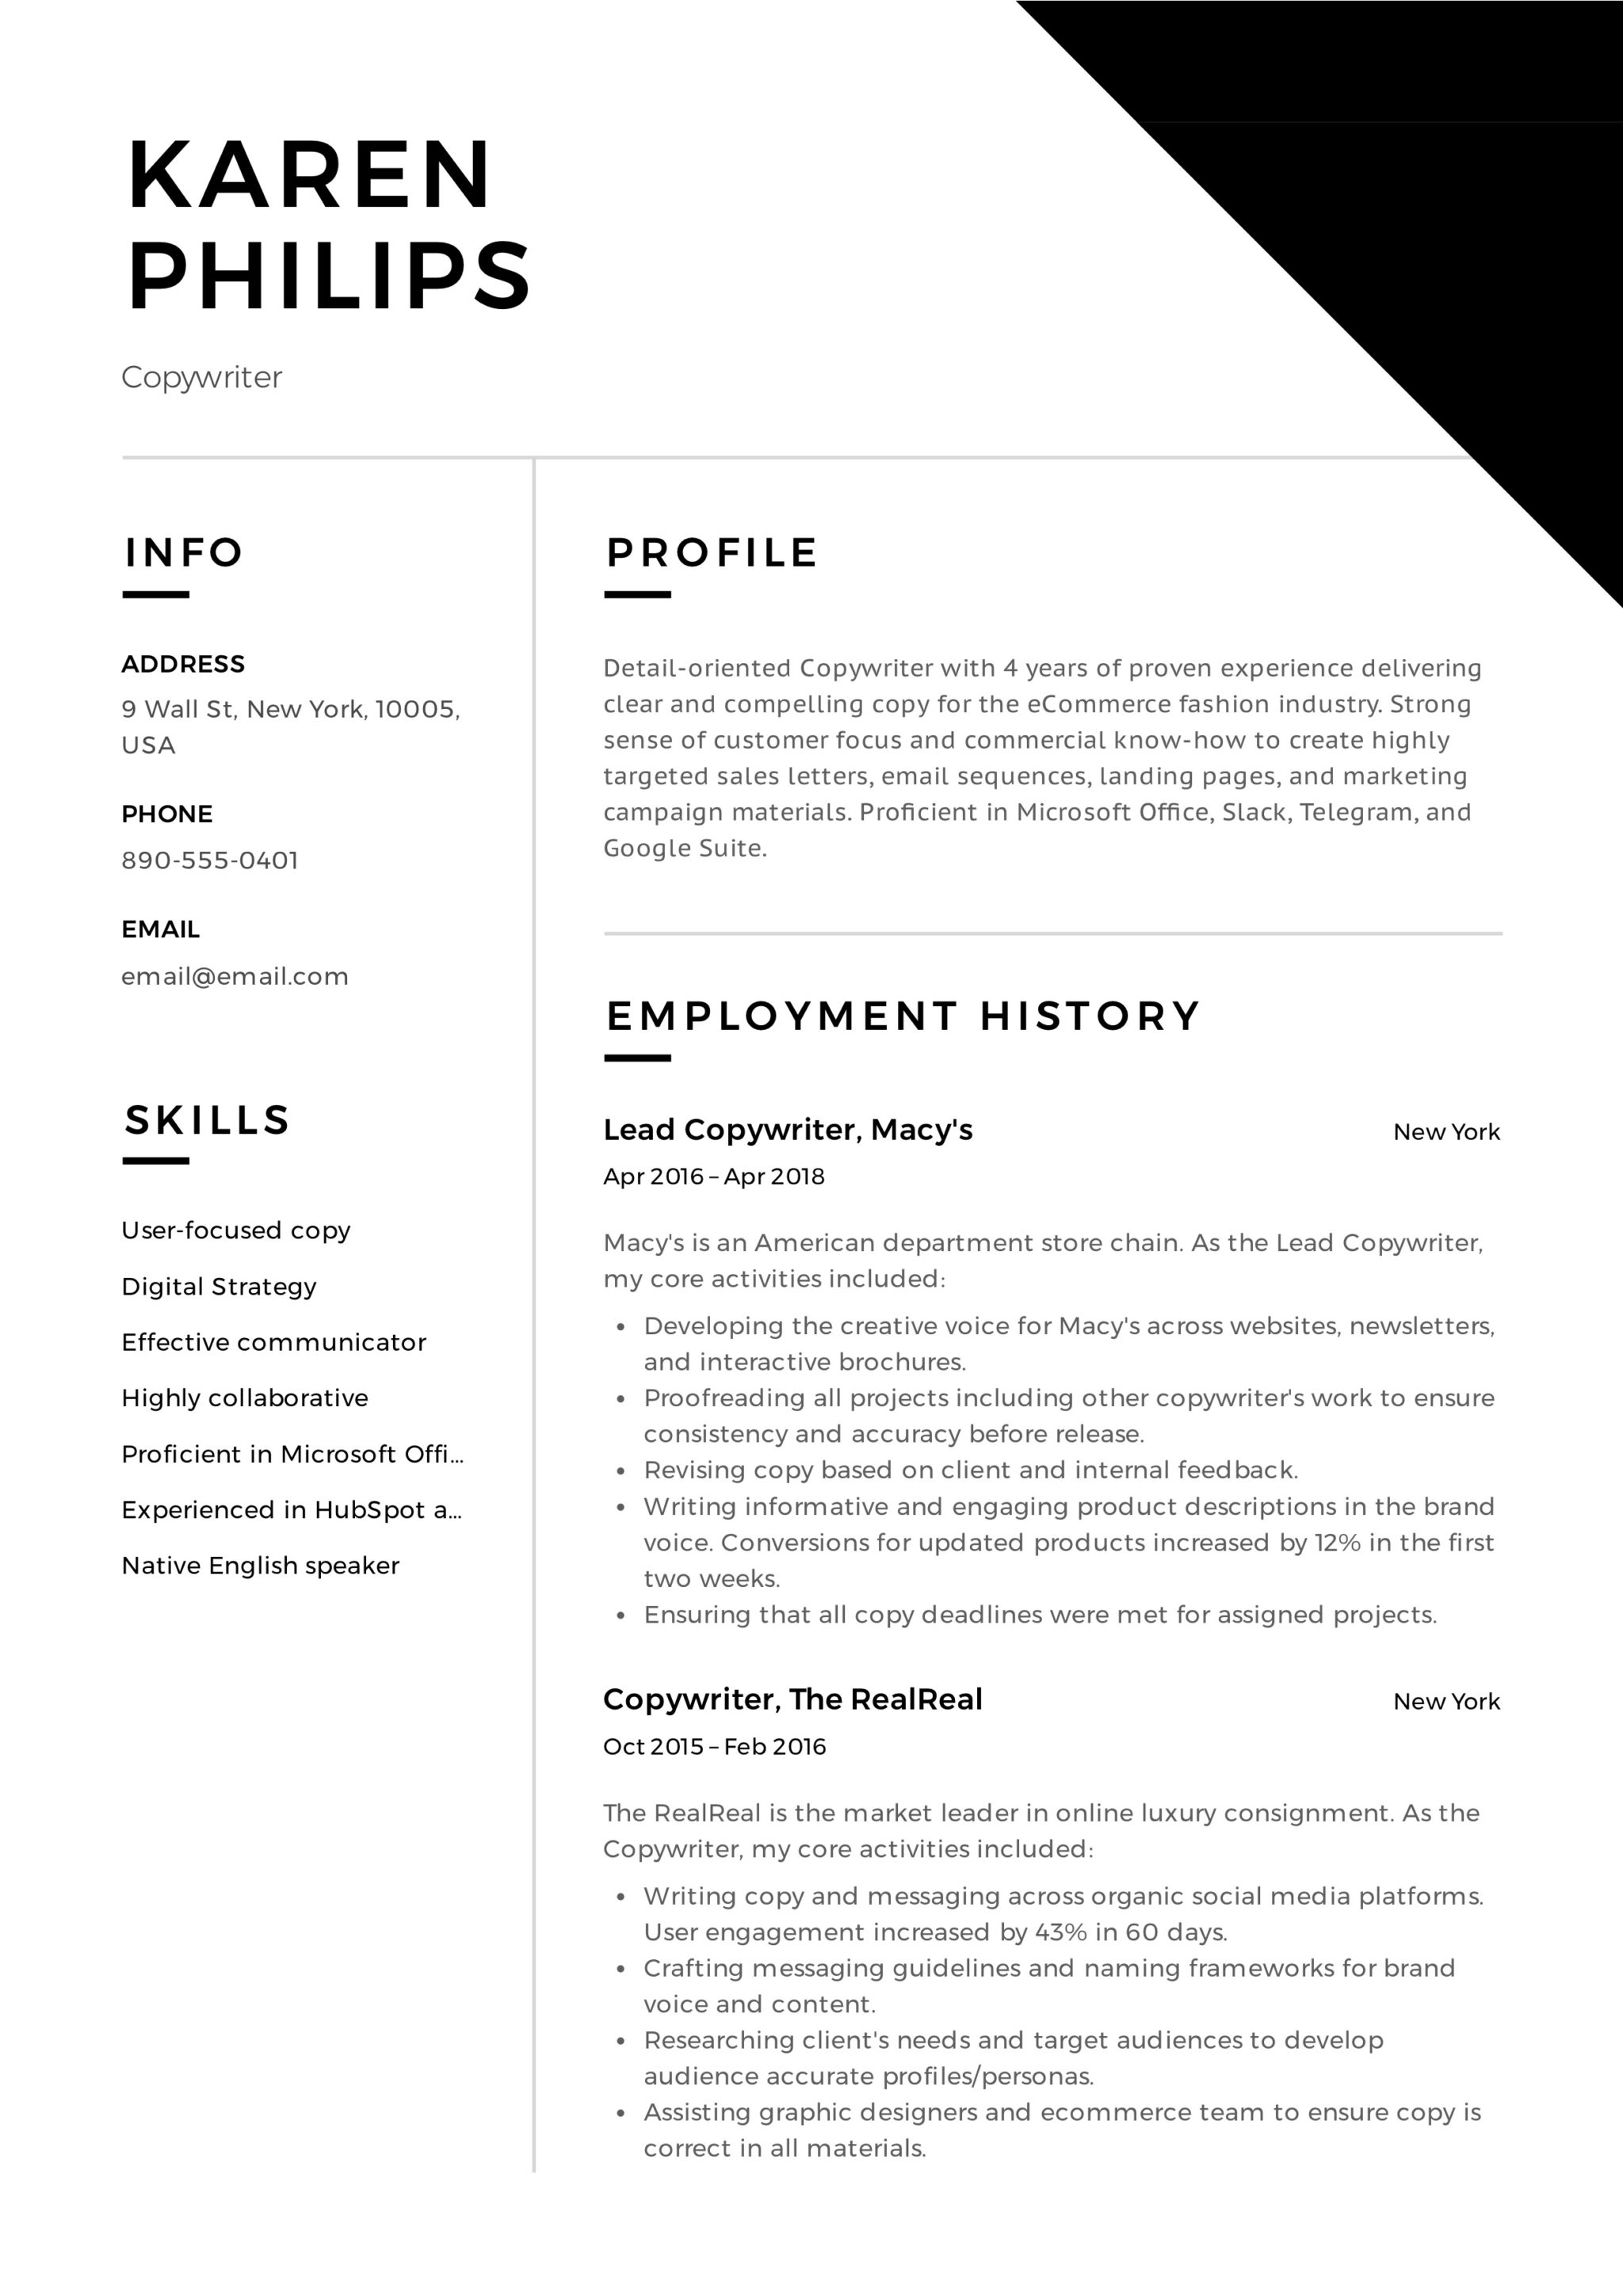 Resume Copywriter Template(11)